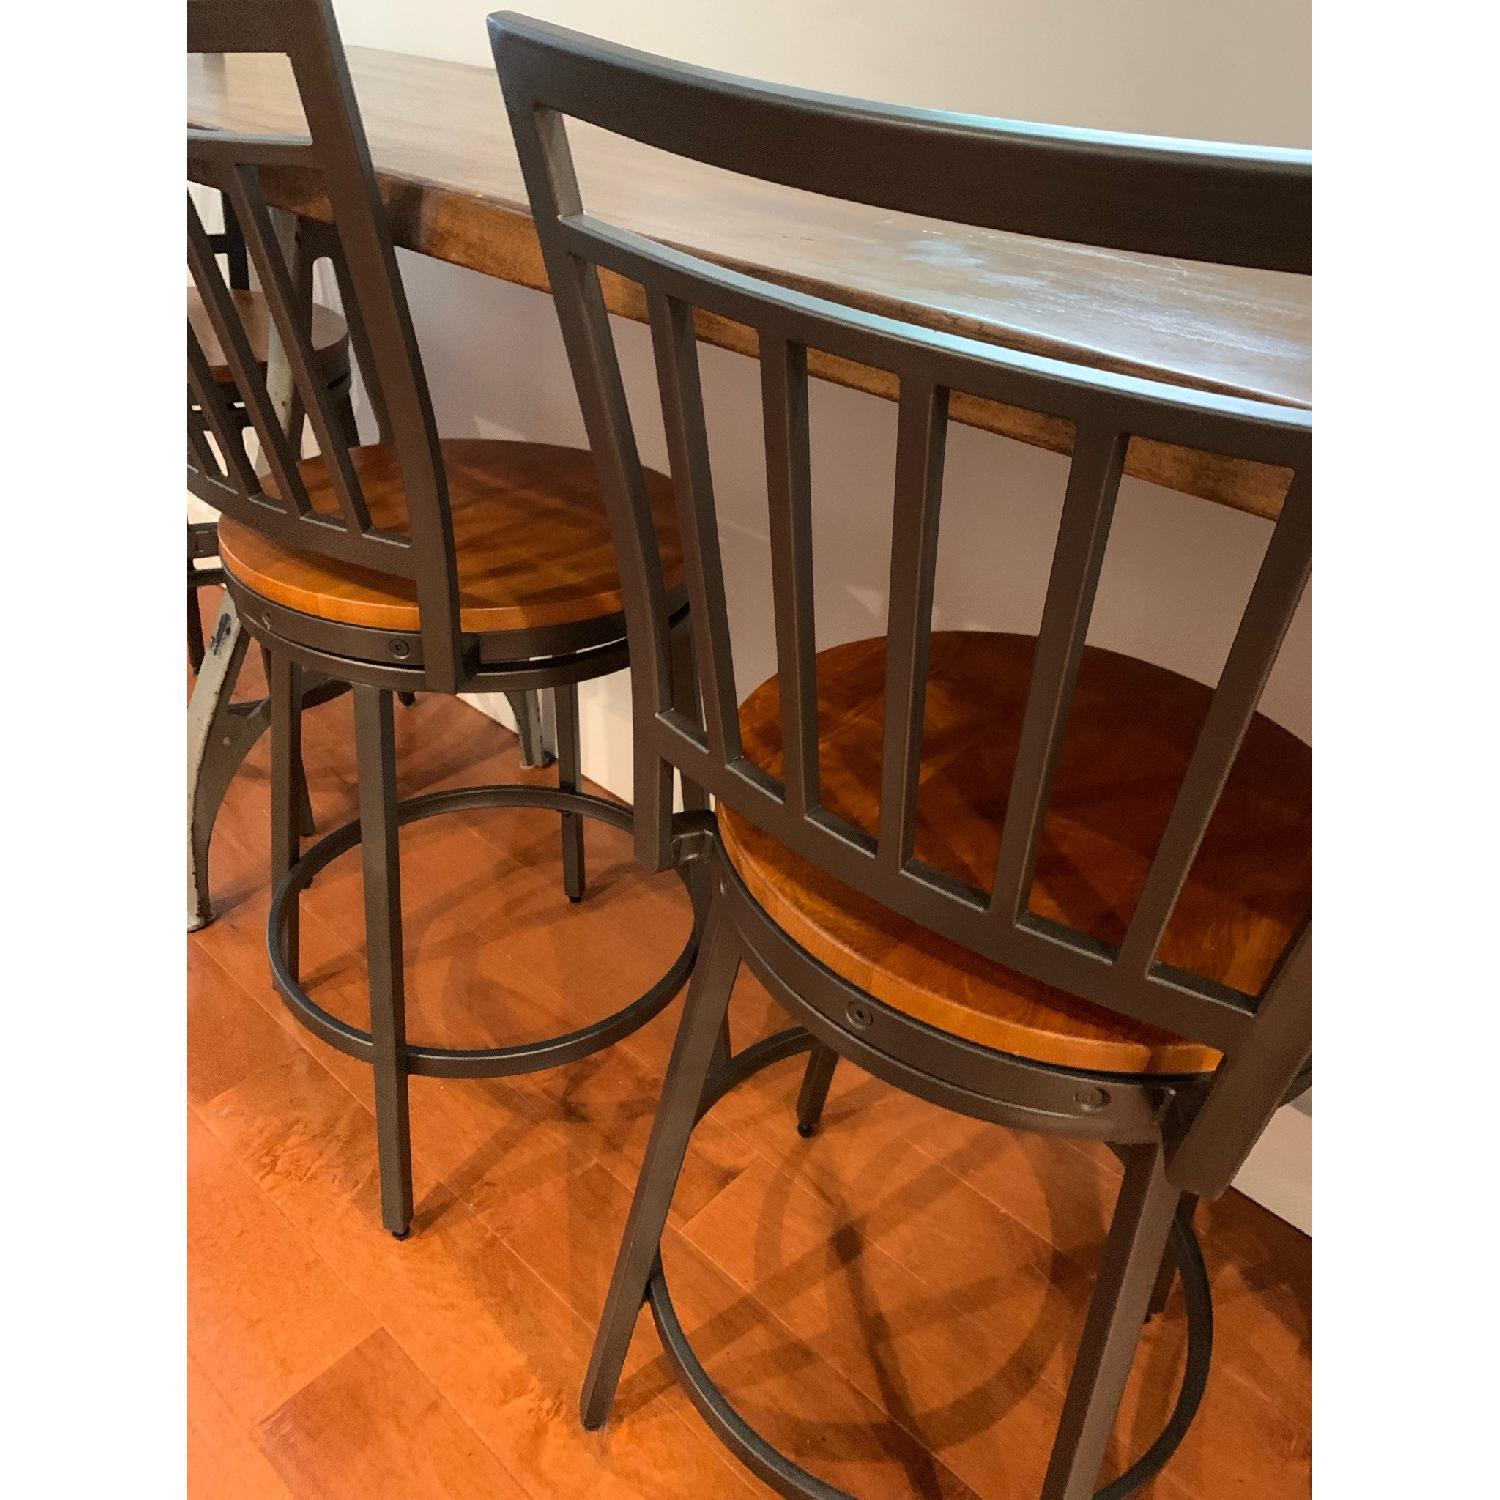 Industrial Wooden Table w/ 4 Chairs - image-6